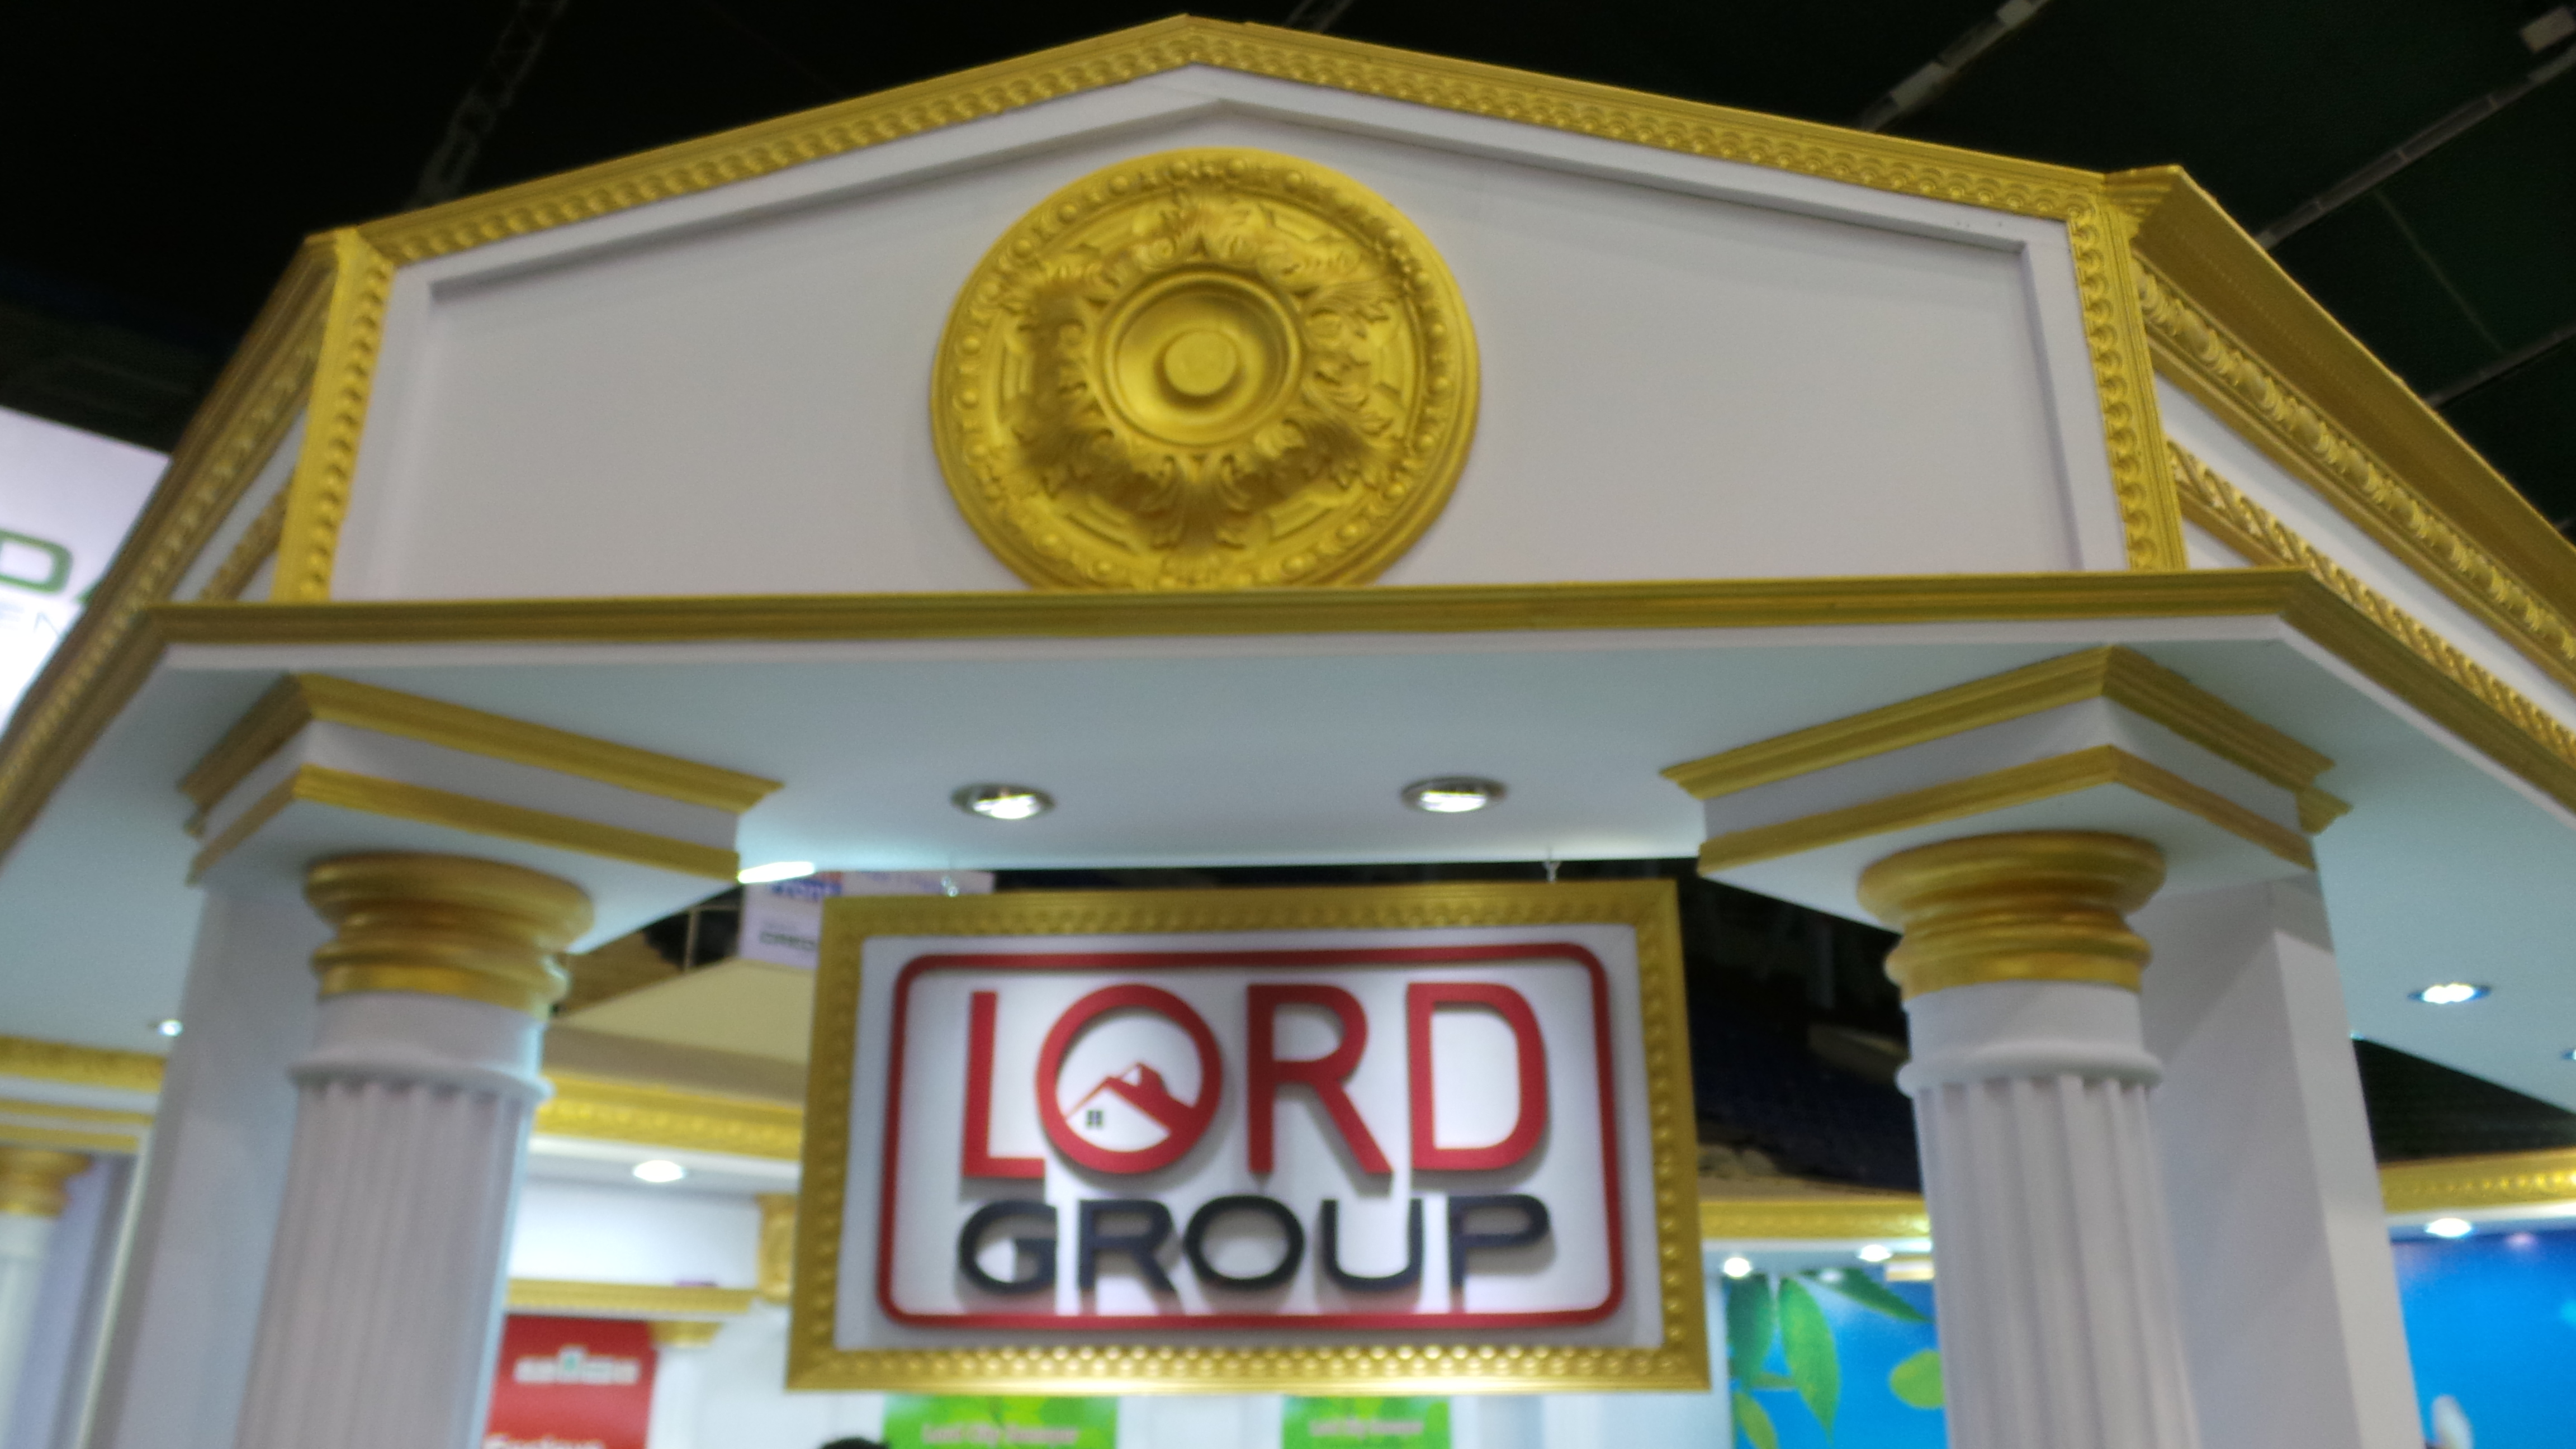 Lord Group